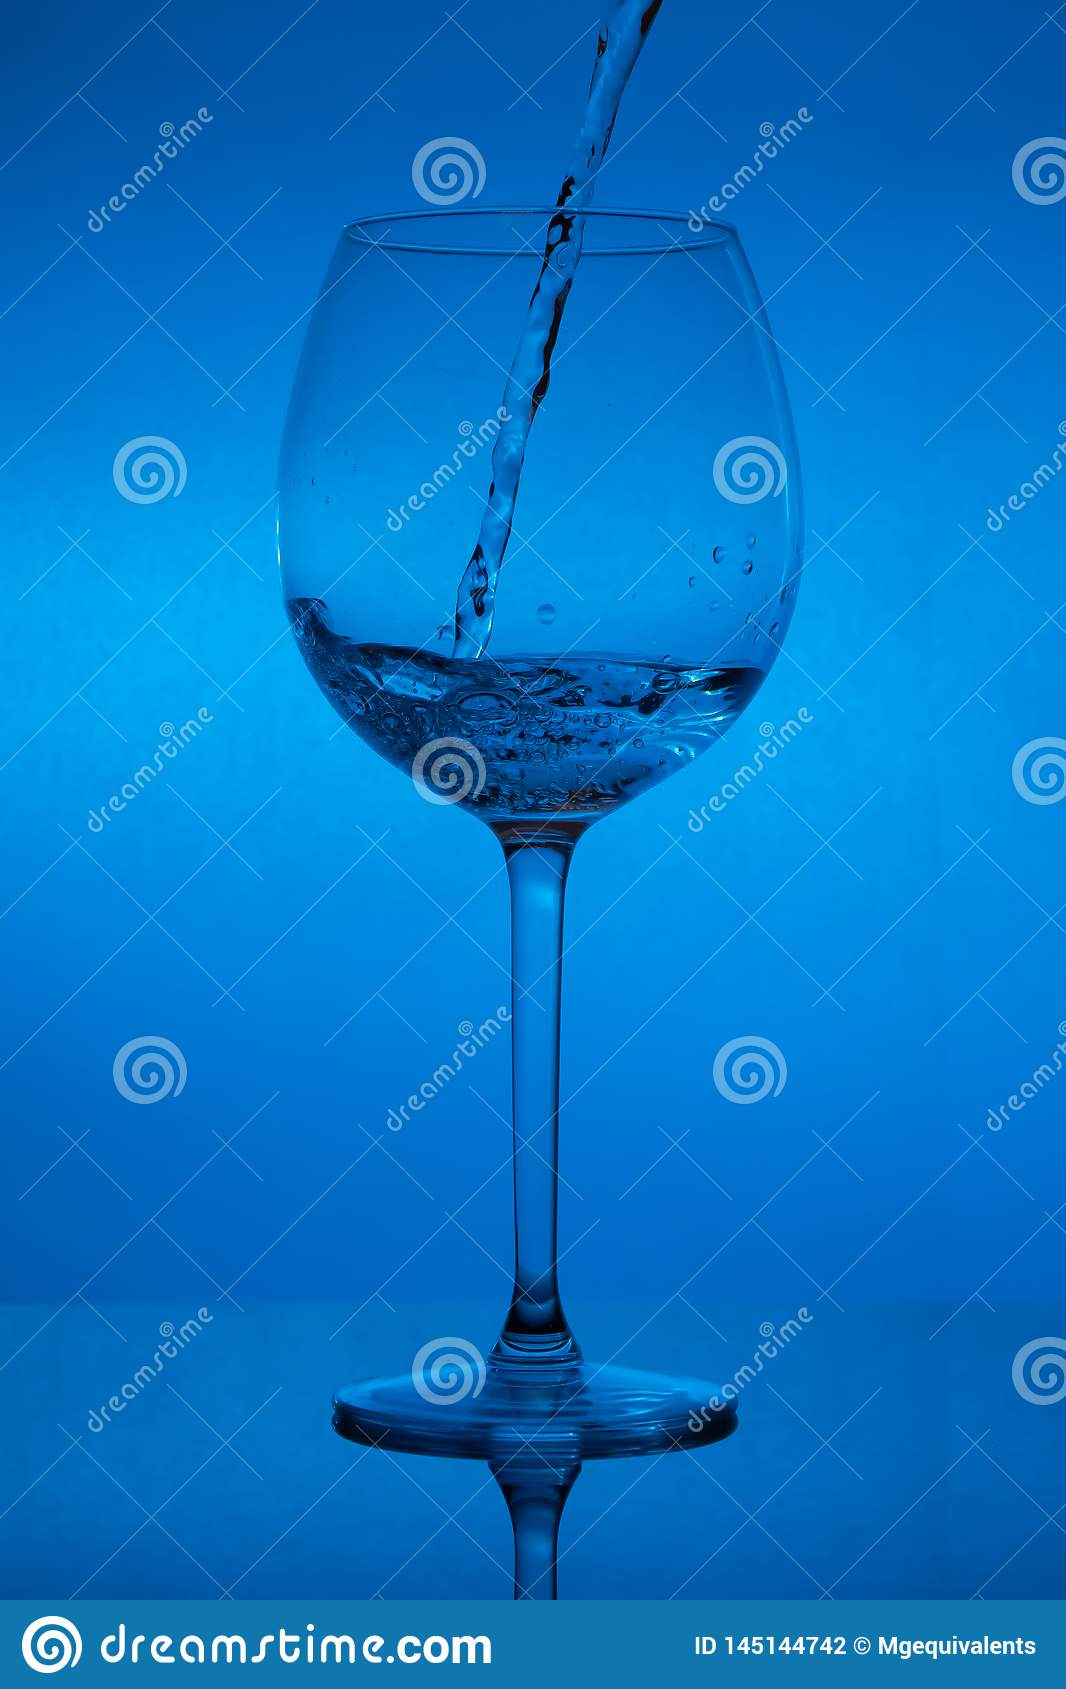 Filling the glass, pouring wineglass on blue background